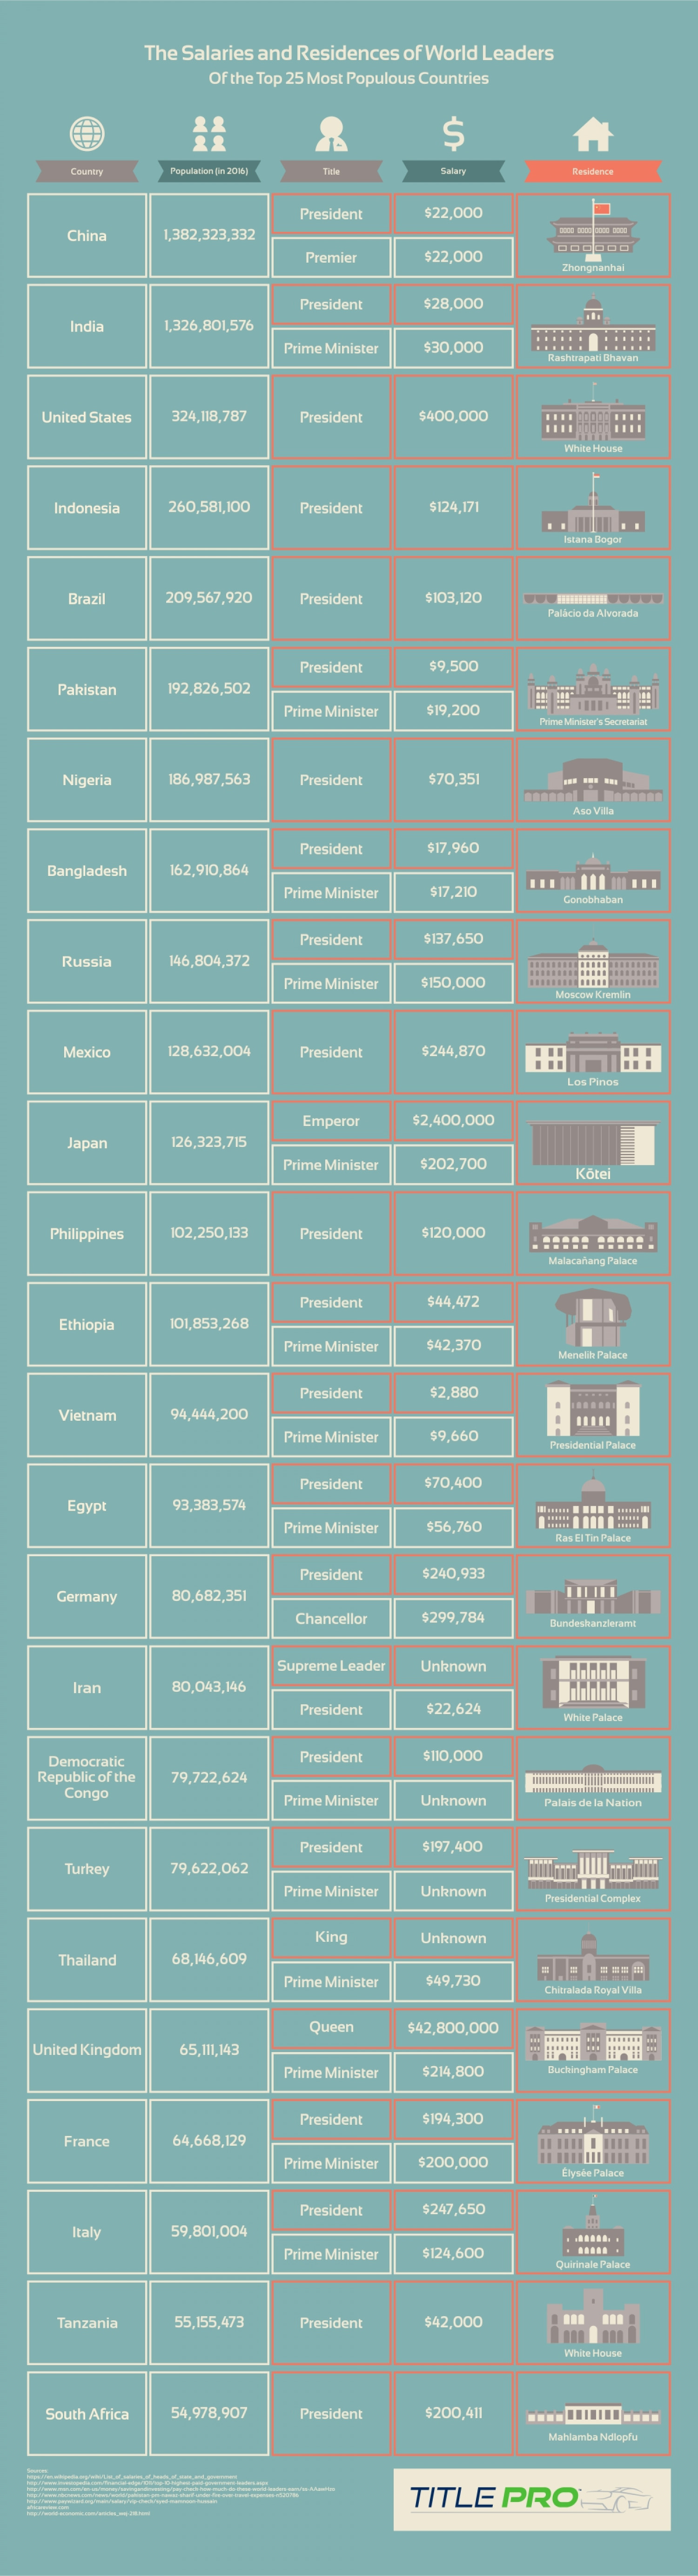 The Salaries and Residences of World Leaders Infographic